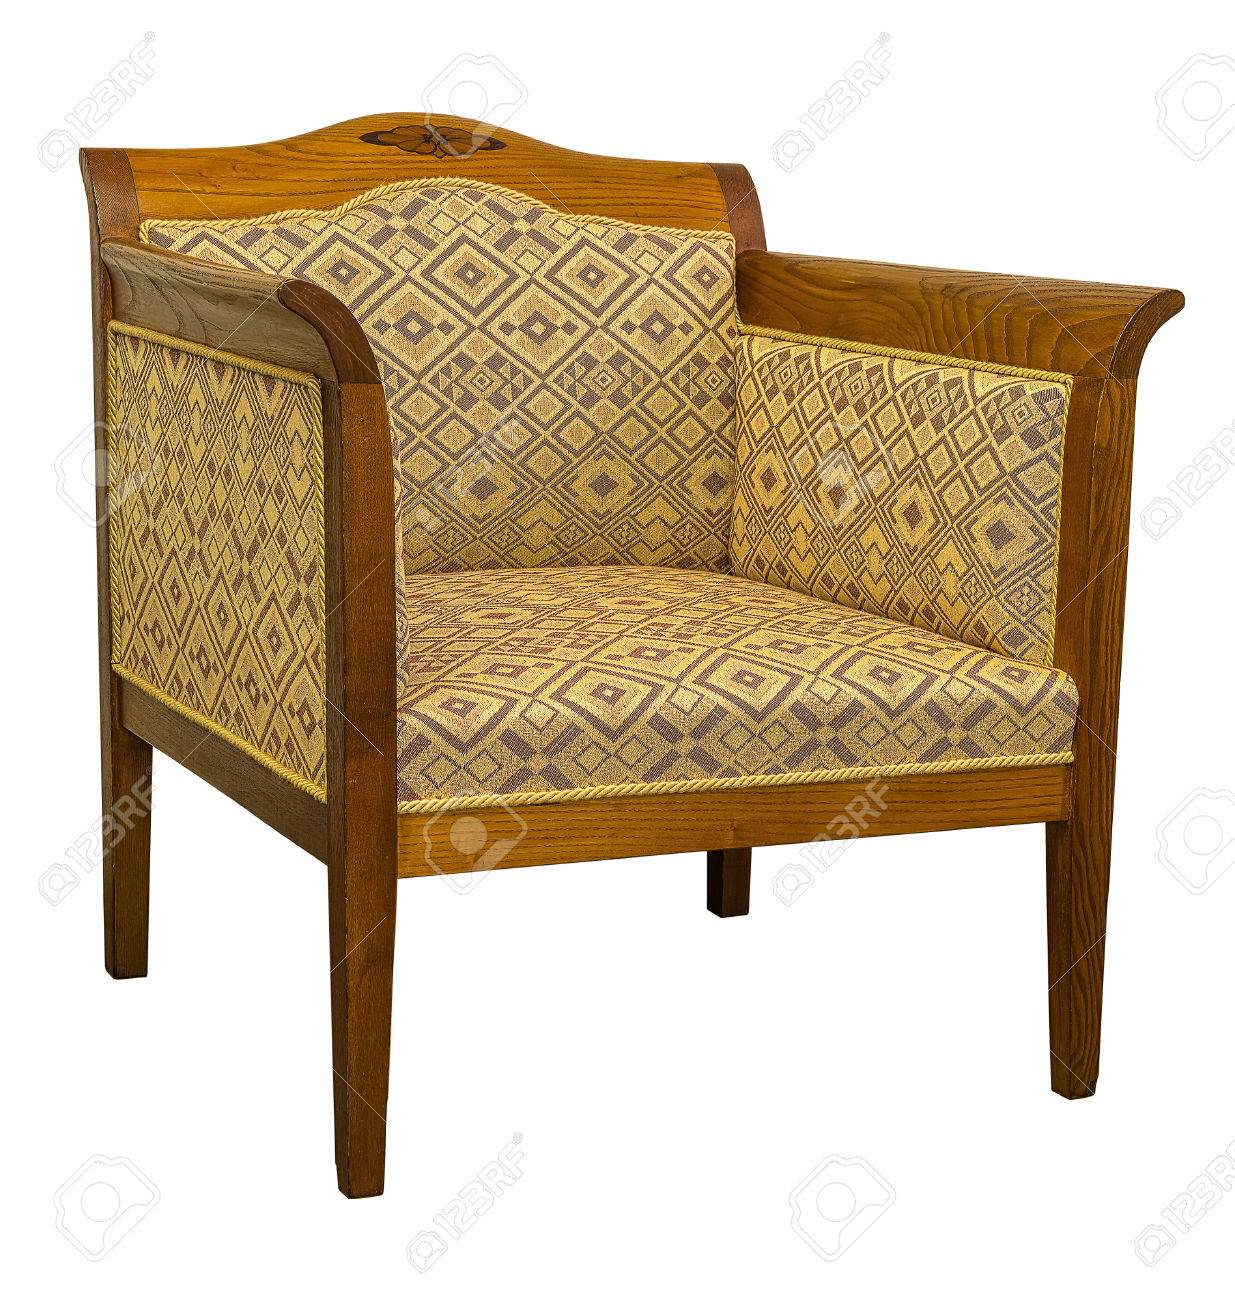 vintage art deco furniture. Stock Photo - Vintage Art Deco Chair Sofa Isolated On White Background Furniture D